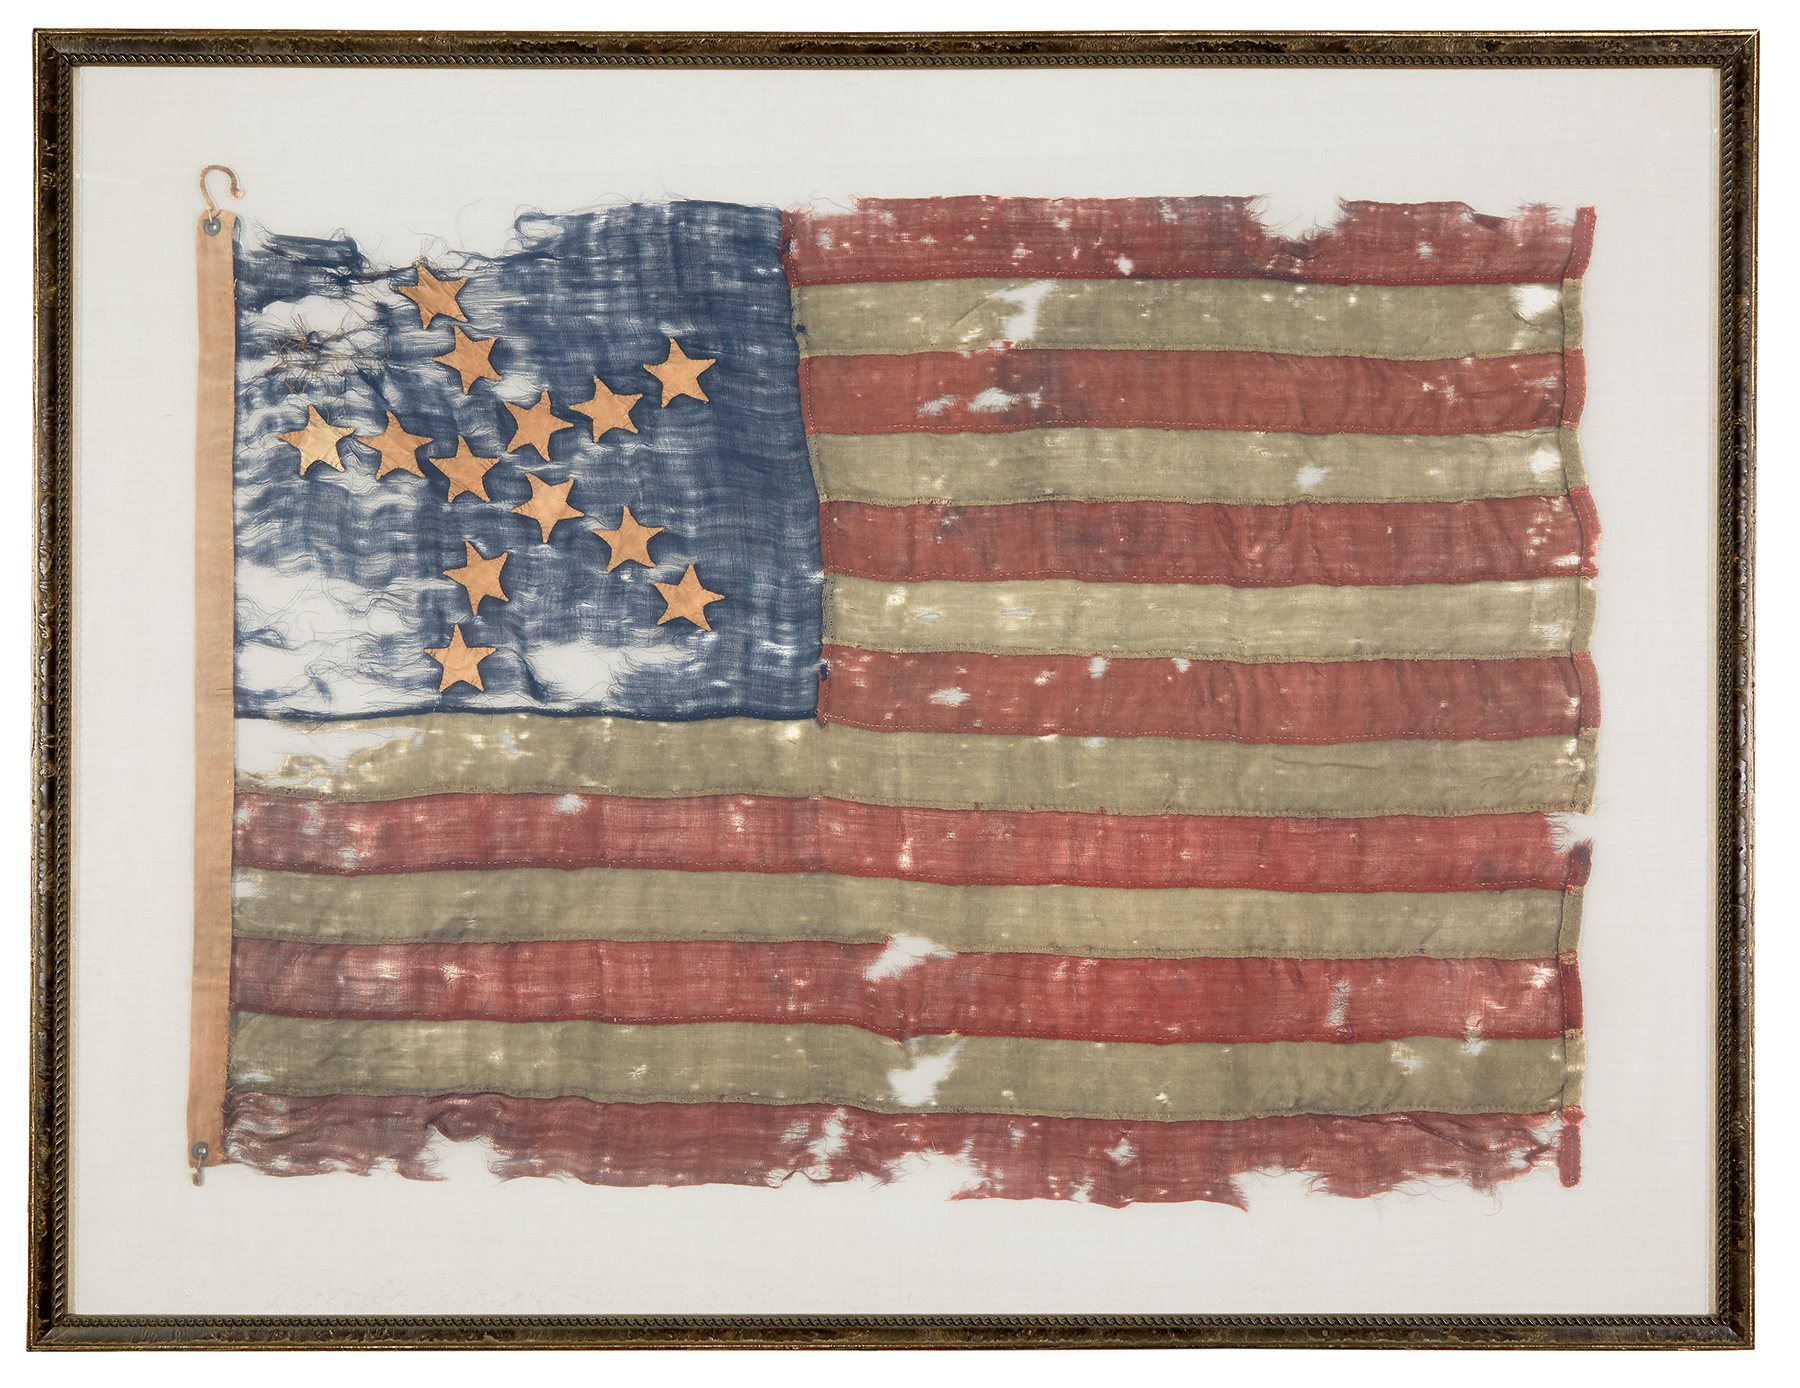 A 13-star American National Flag in the